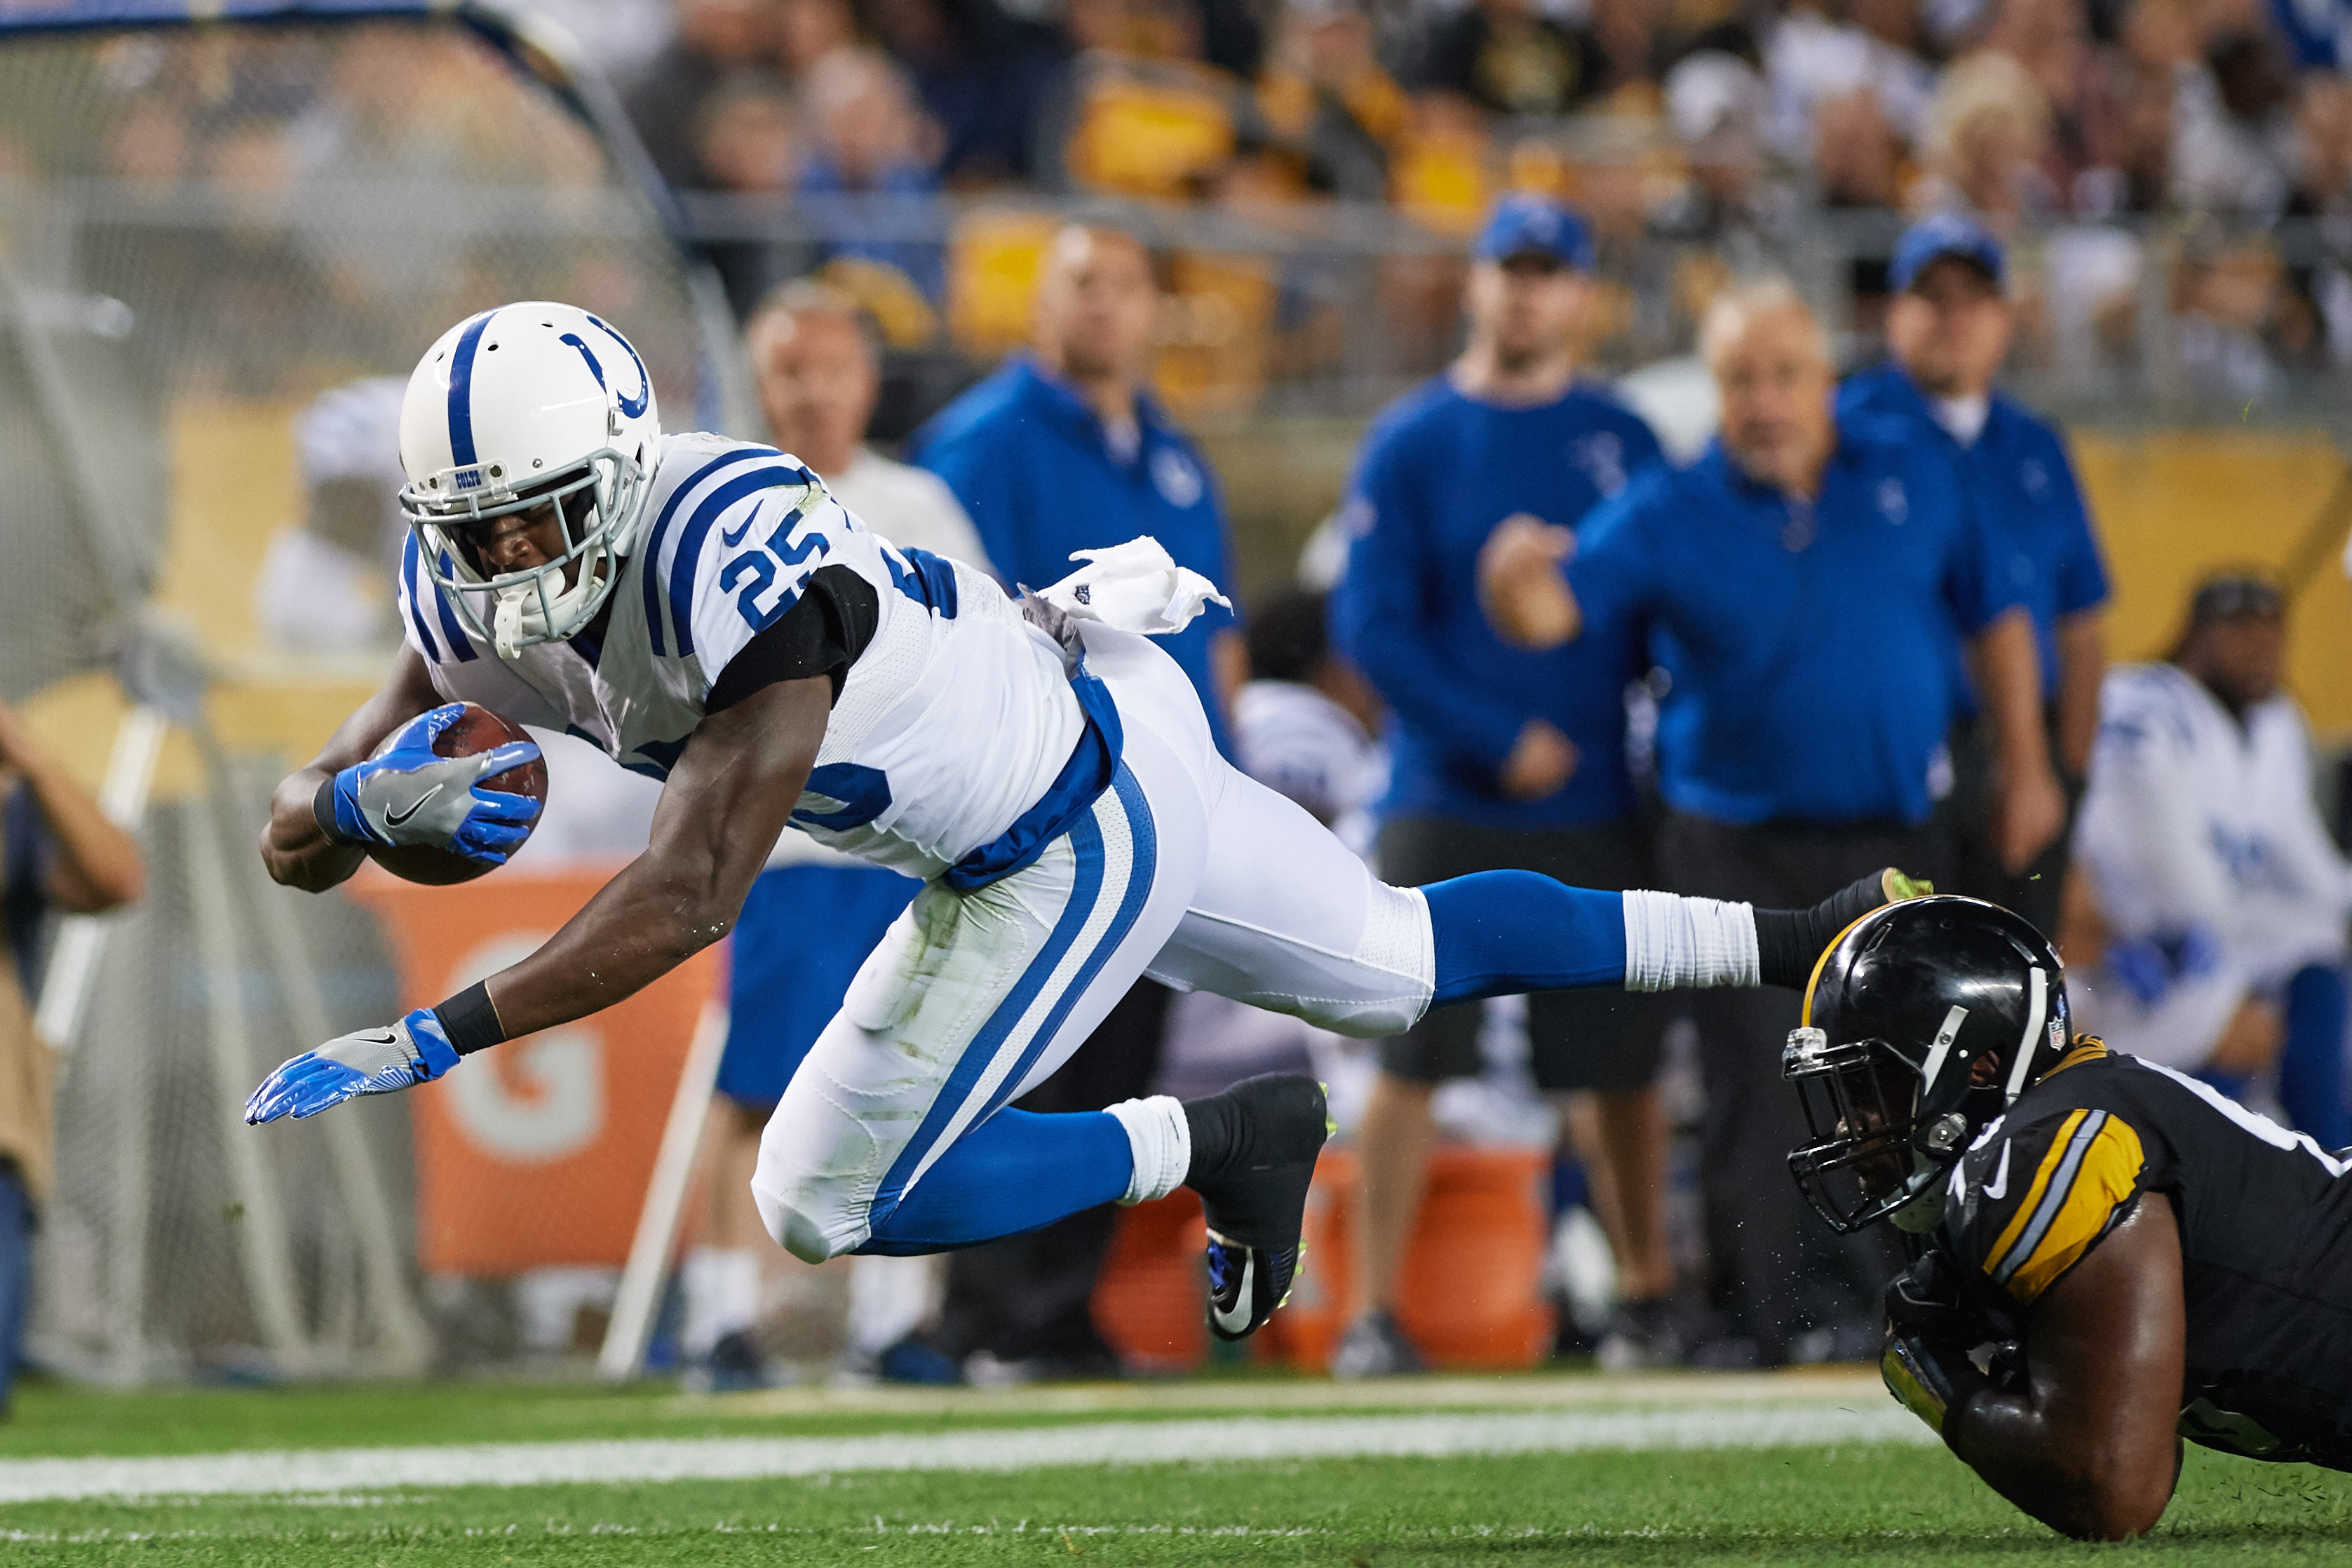 NFL: AUG 26 Preseason - Colts at Steelers